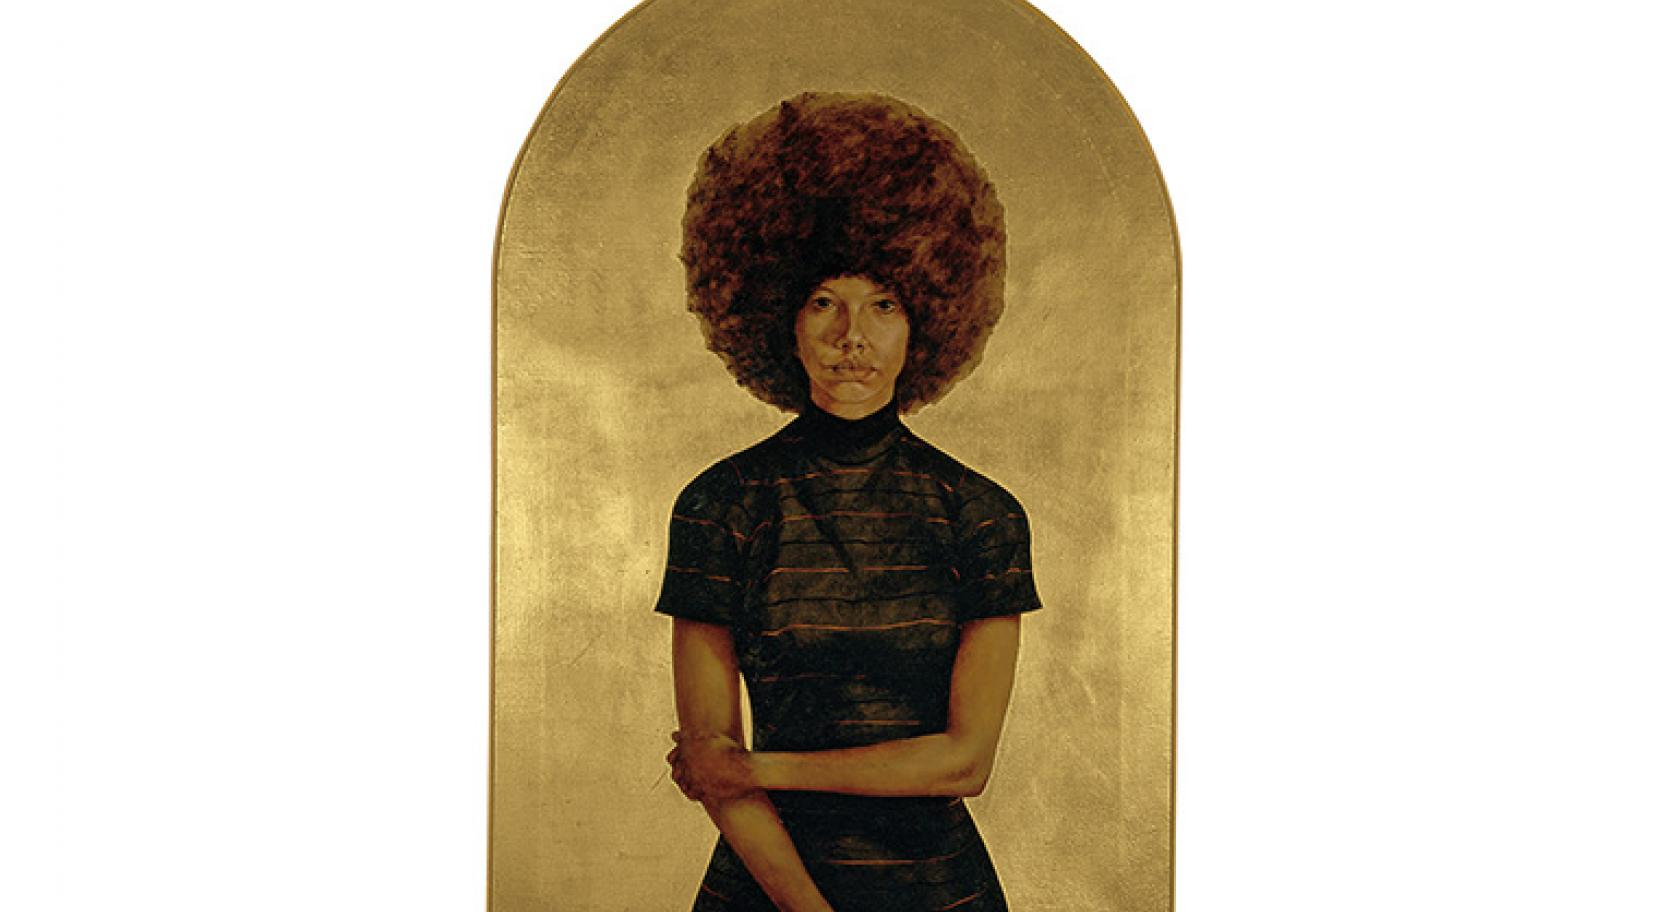 HENDRICKS, L. BARKLEY, LAWDY MAMA, 1969, OIL AND GOLD LEAF ON CANVAS. PUBLISHED BY THE STUDIO MUSEUM IN HARLEM, GIFT OF STUART LIEBMAN, IN MEMORY OF JOSEPH B. LIEBMAN, 1983.25. © ESTATE OF BARKLEY L. HENDRICKS.